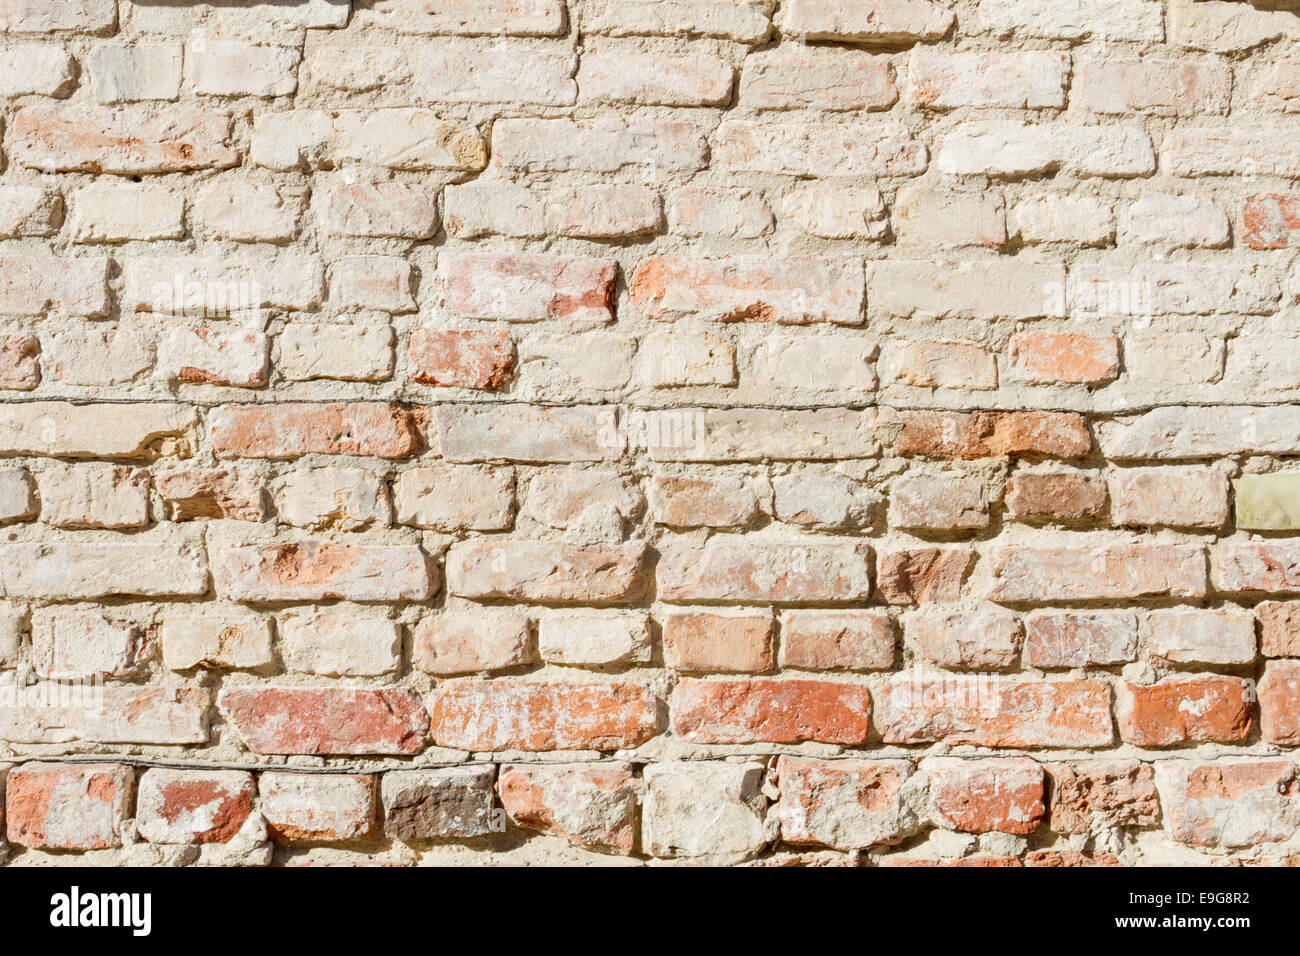 Bedraggled brick wall in dusted yellow - Stock Image